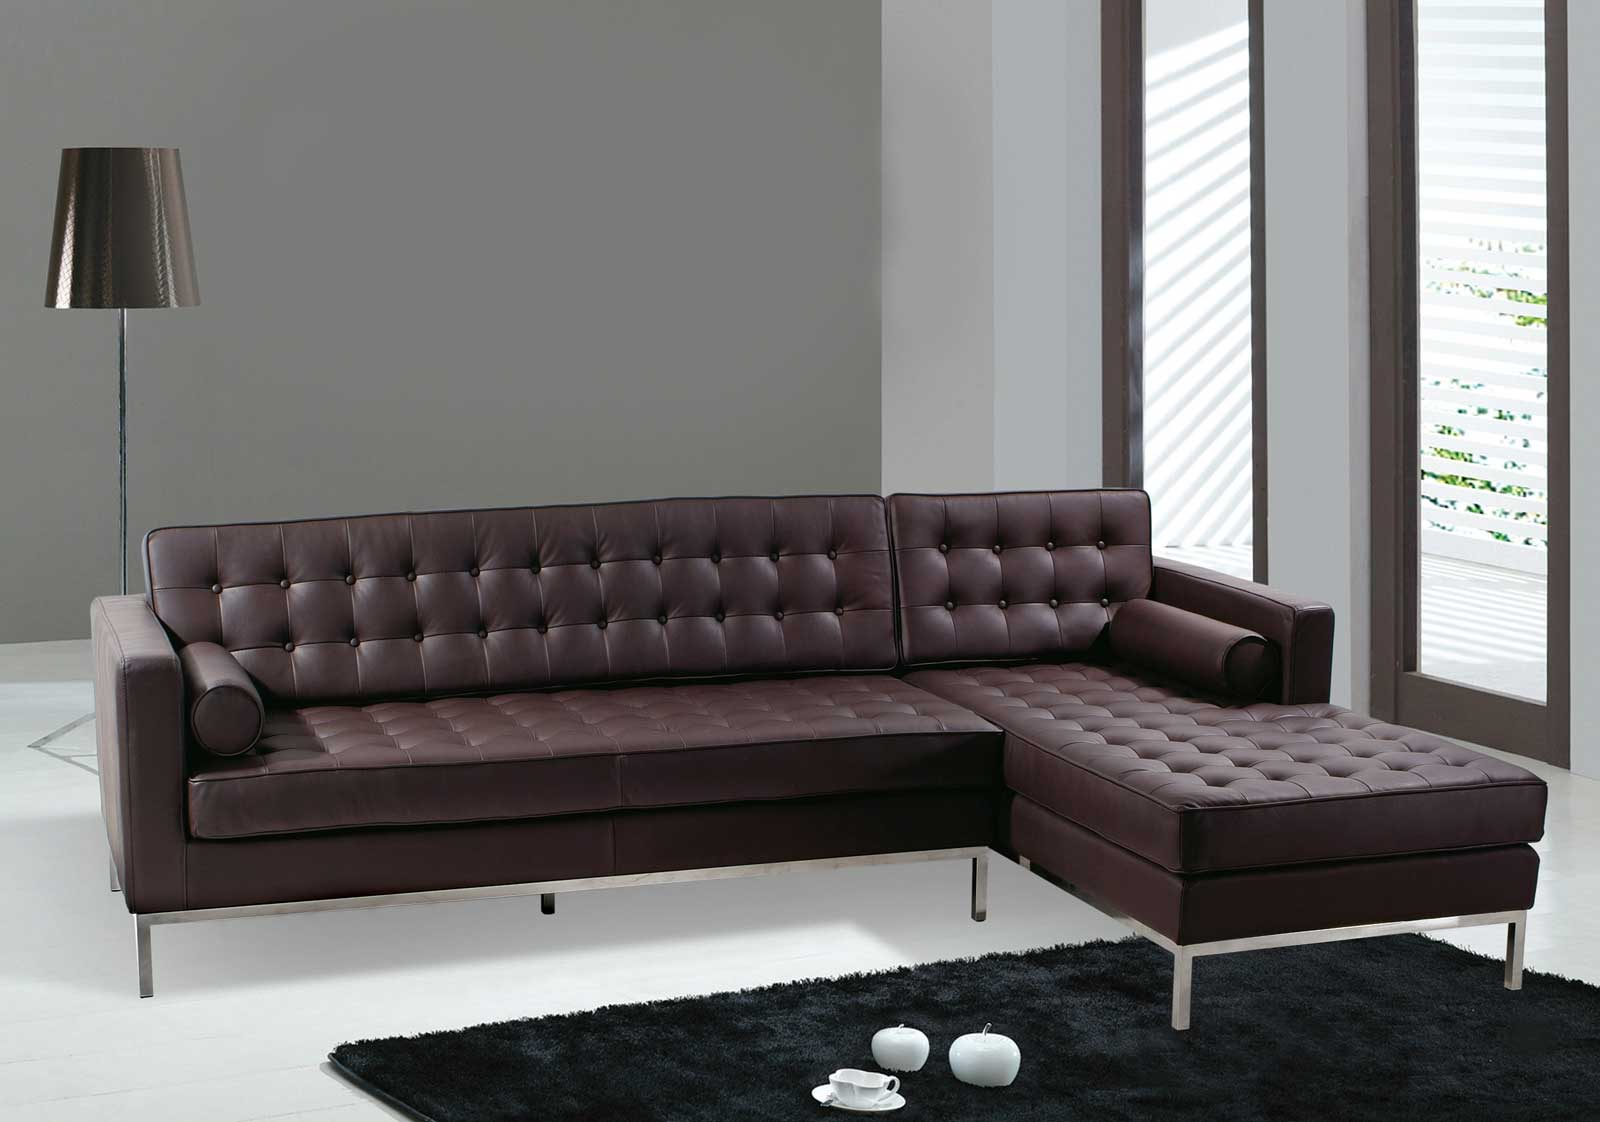 Stunning Brown Leather Sectional Sofa Living Room 1600 x 1122 · 89 kB · jpeg